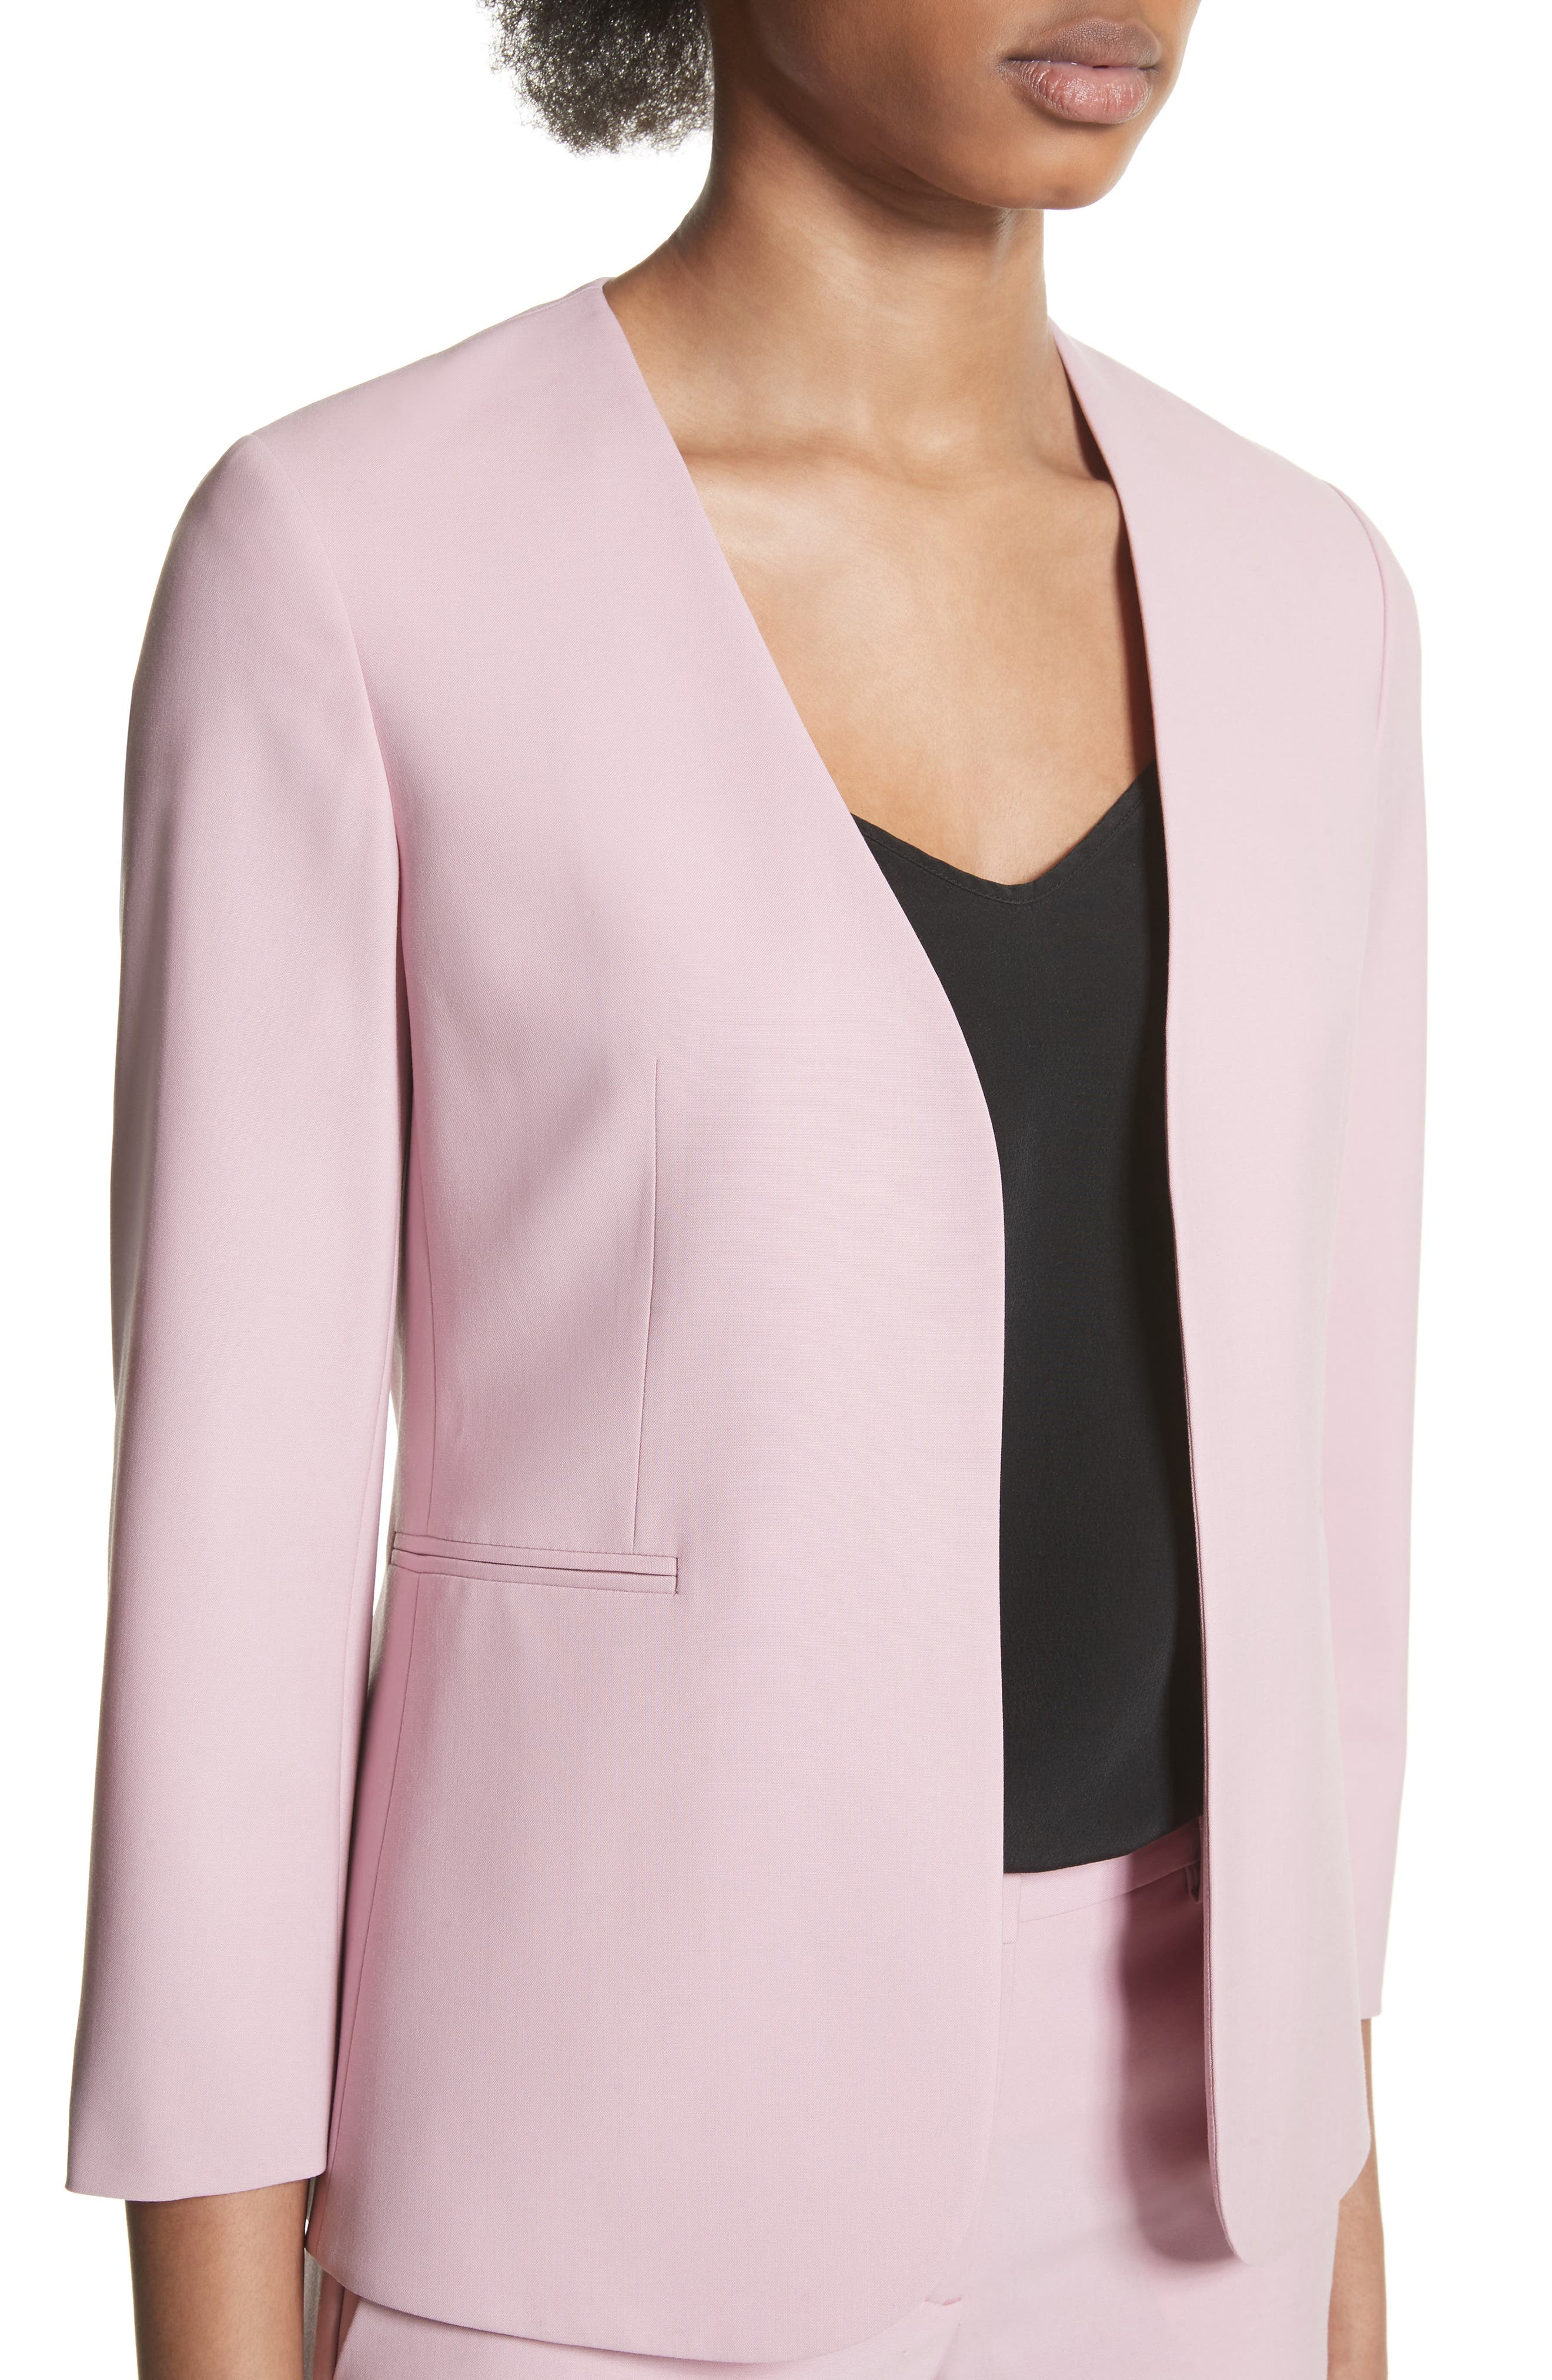 Lindrayia B Good Wool Suit Jacket,                             Alternate thumbnail 4, color,                             Berry Tint